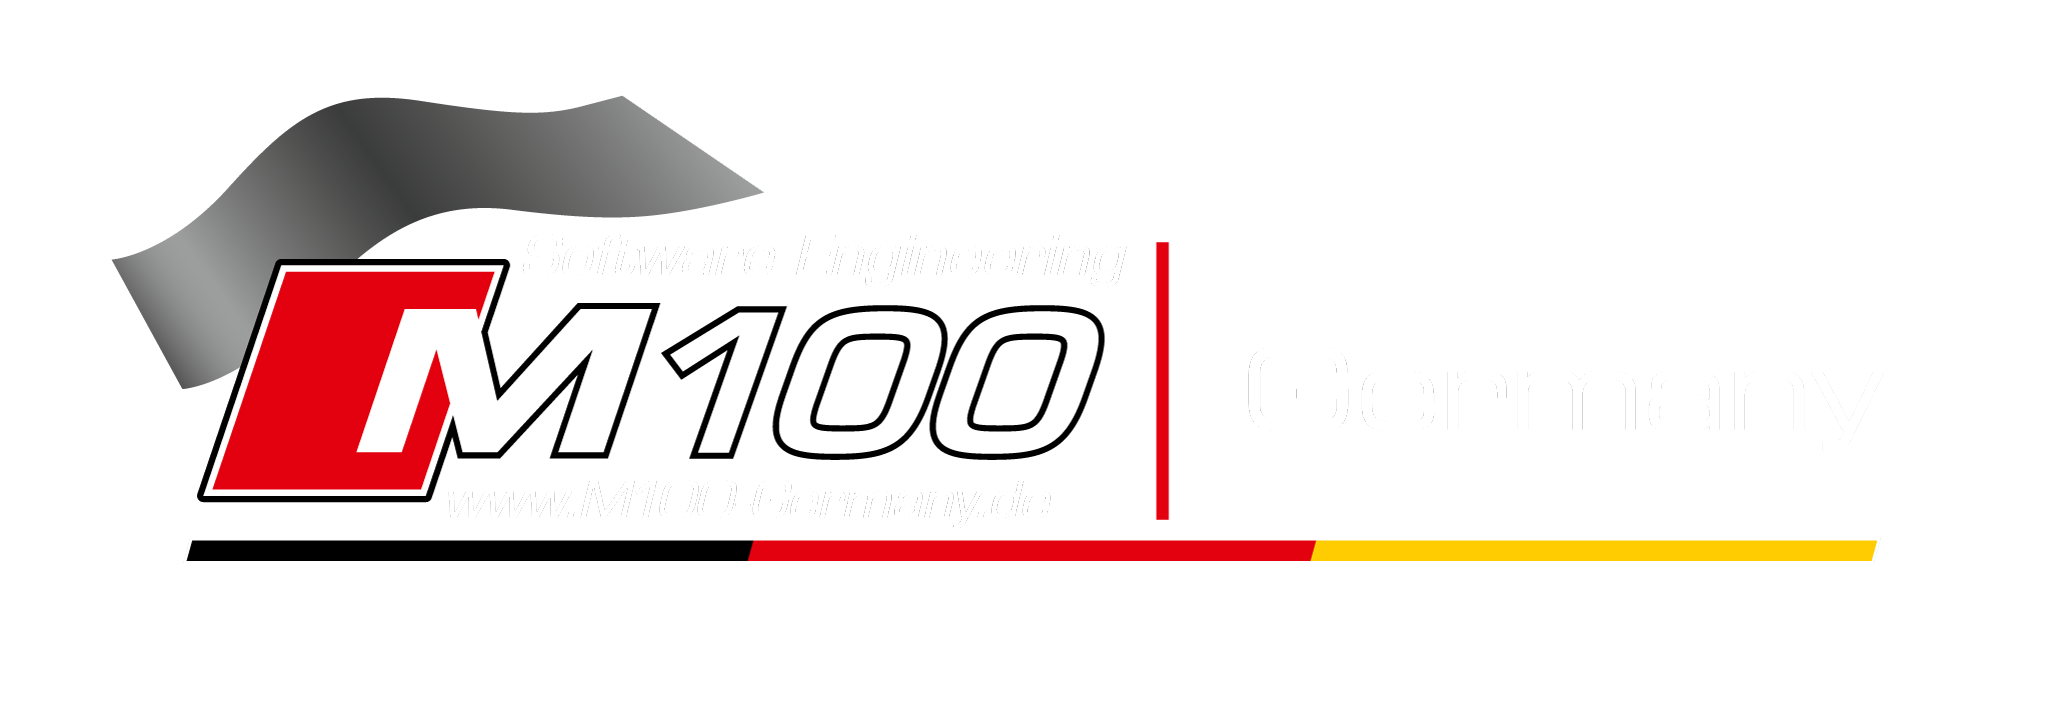 m100-germany